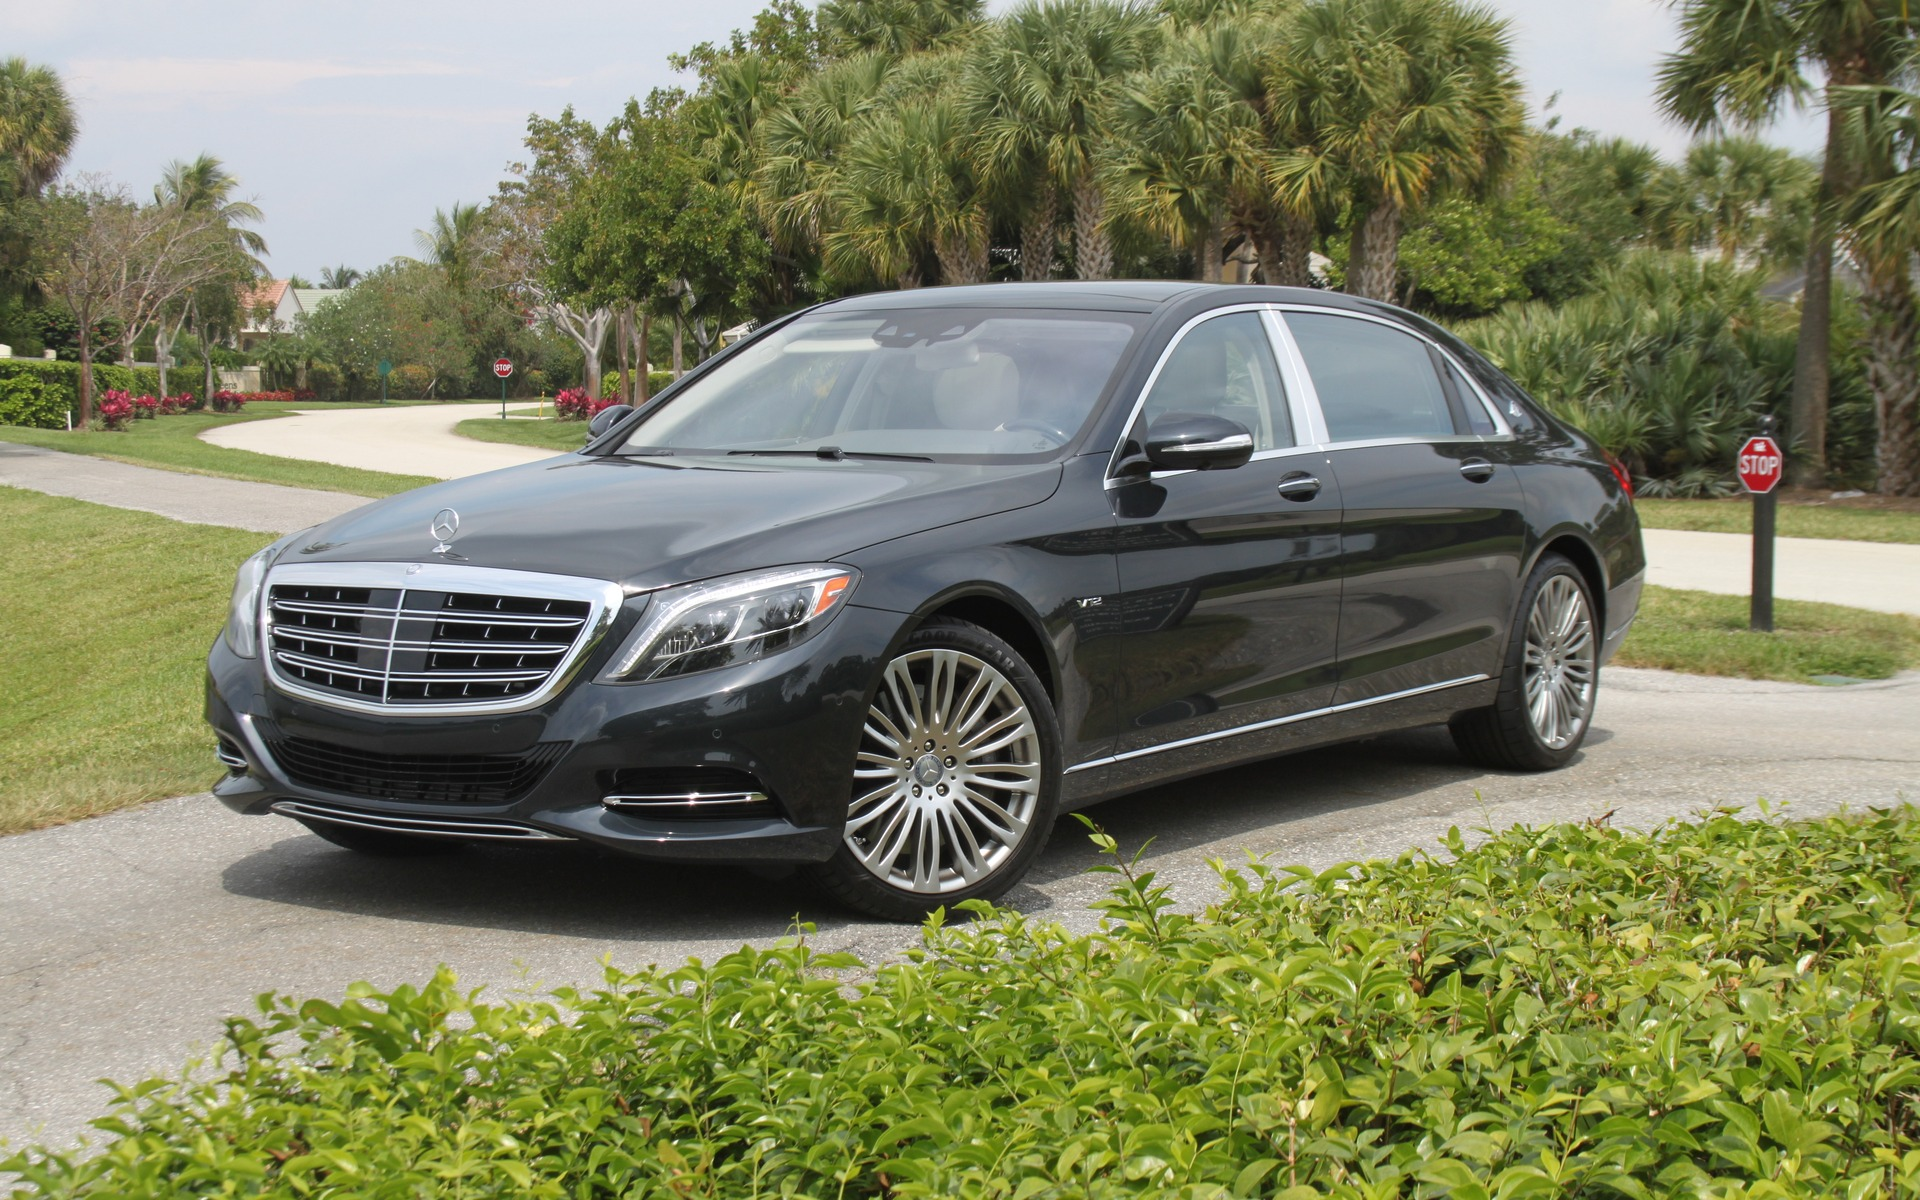 Mercedes benz s class s400 hybrid model 2018 price in for Mercedes benz complaints procedure